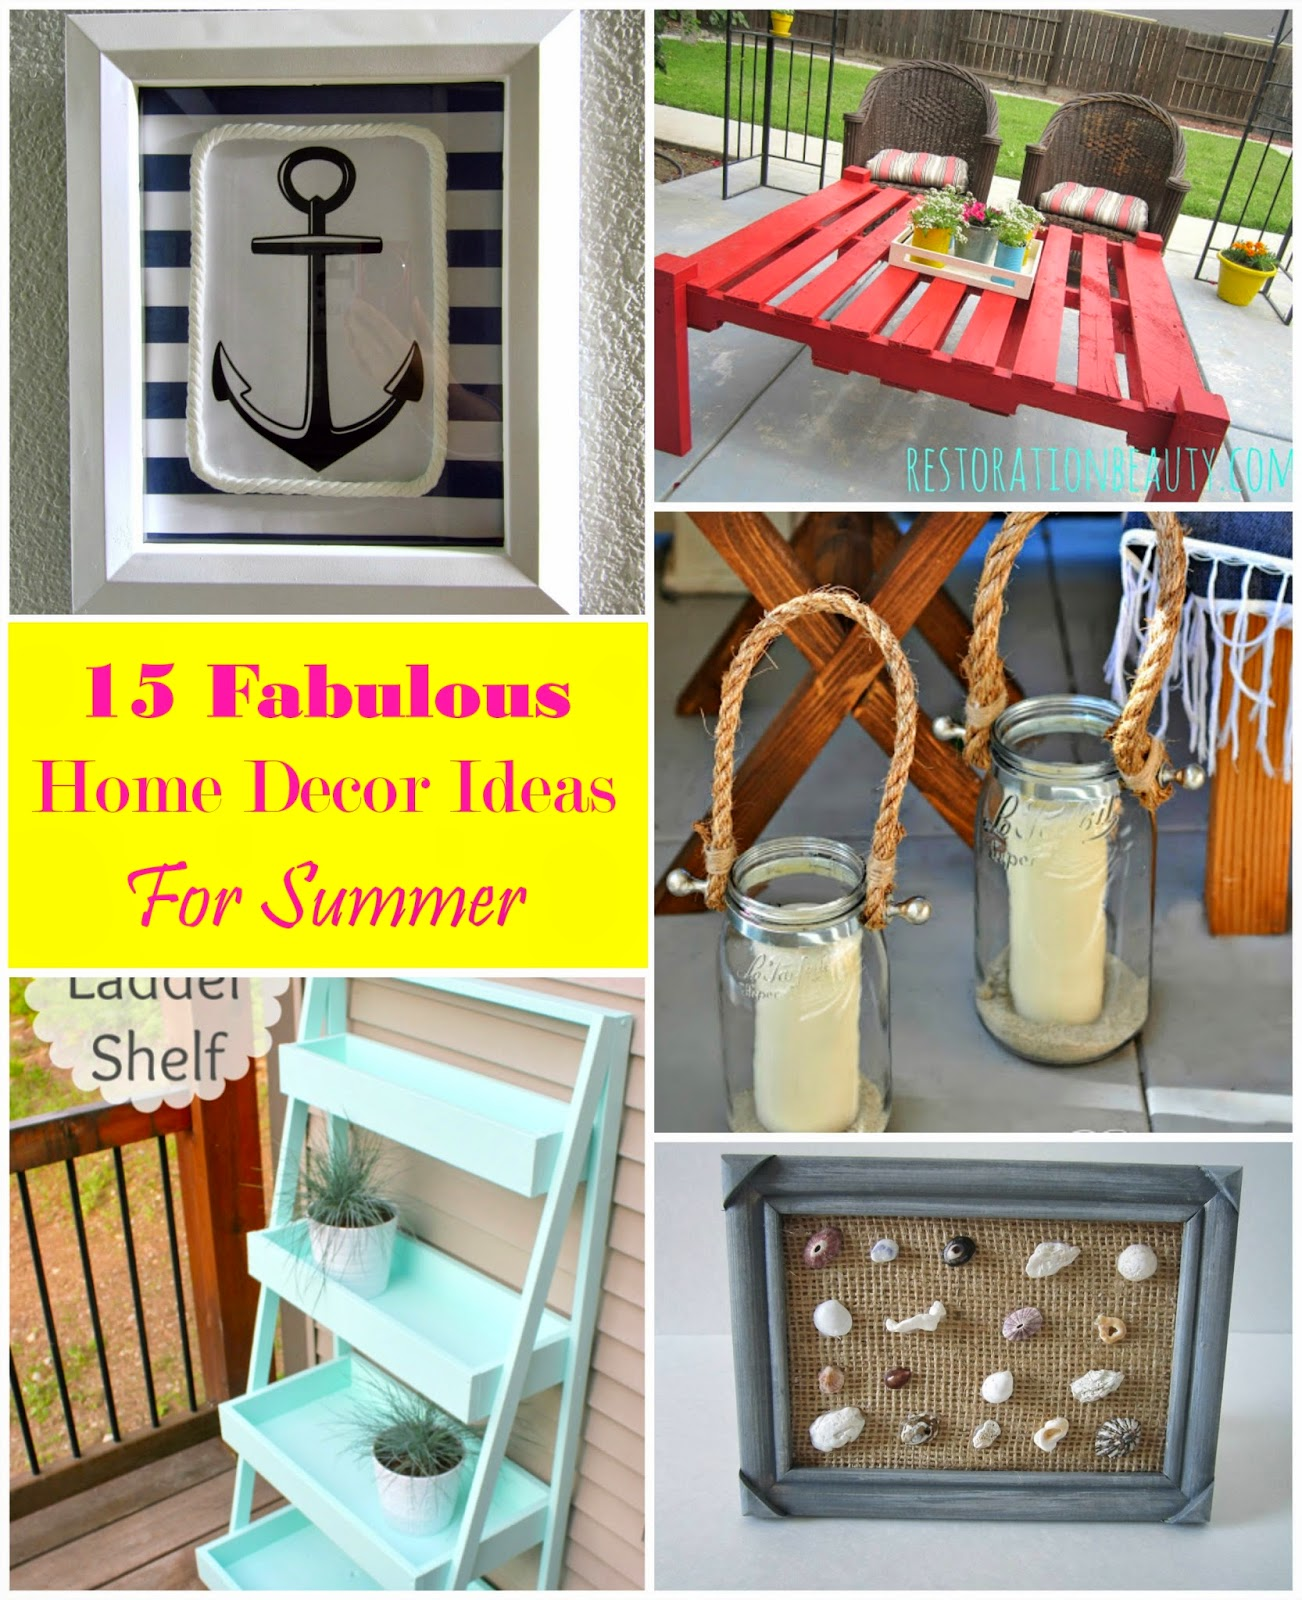 15 Thrifty And Chic Diy Home Decorating Ideas: Restoration Beauty: 15 Fabulous Home Decor Ideas For Summer